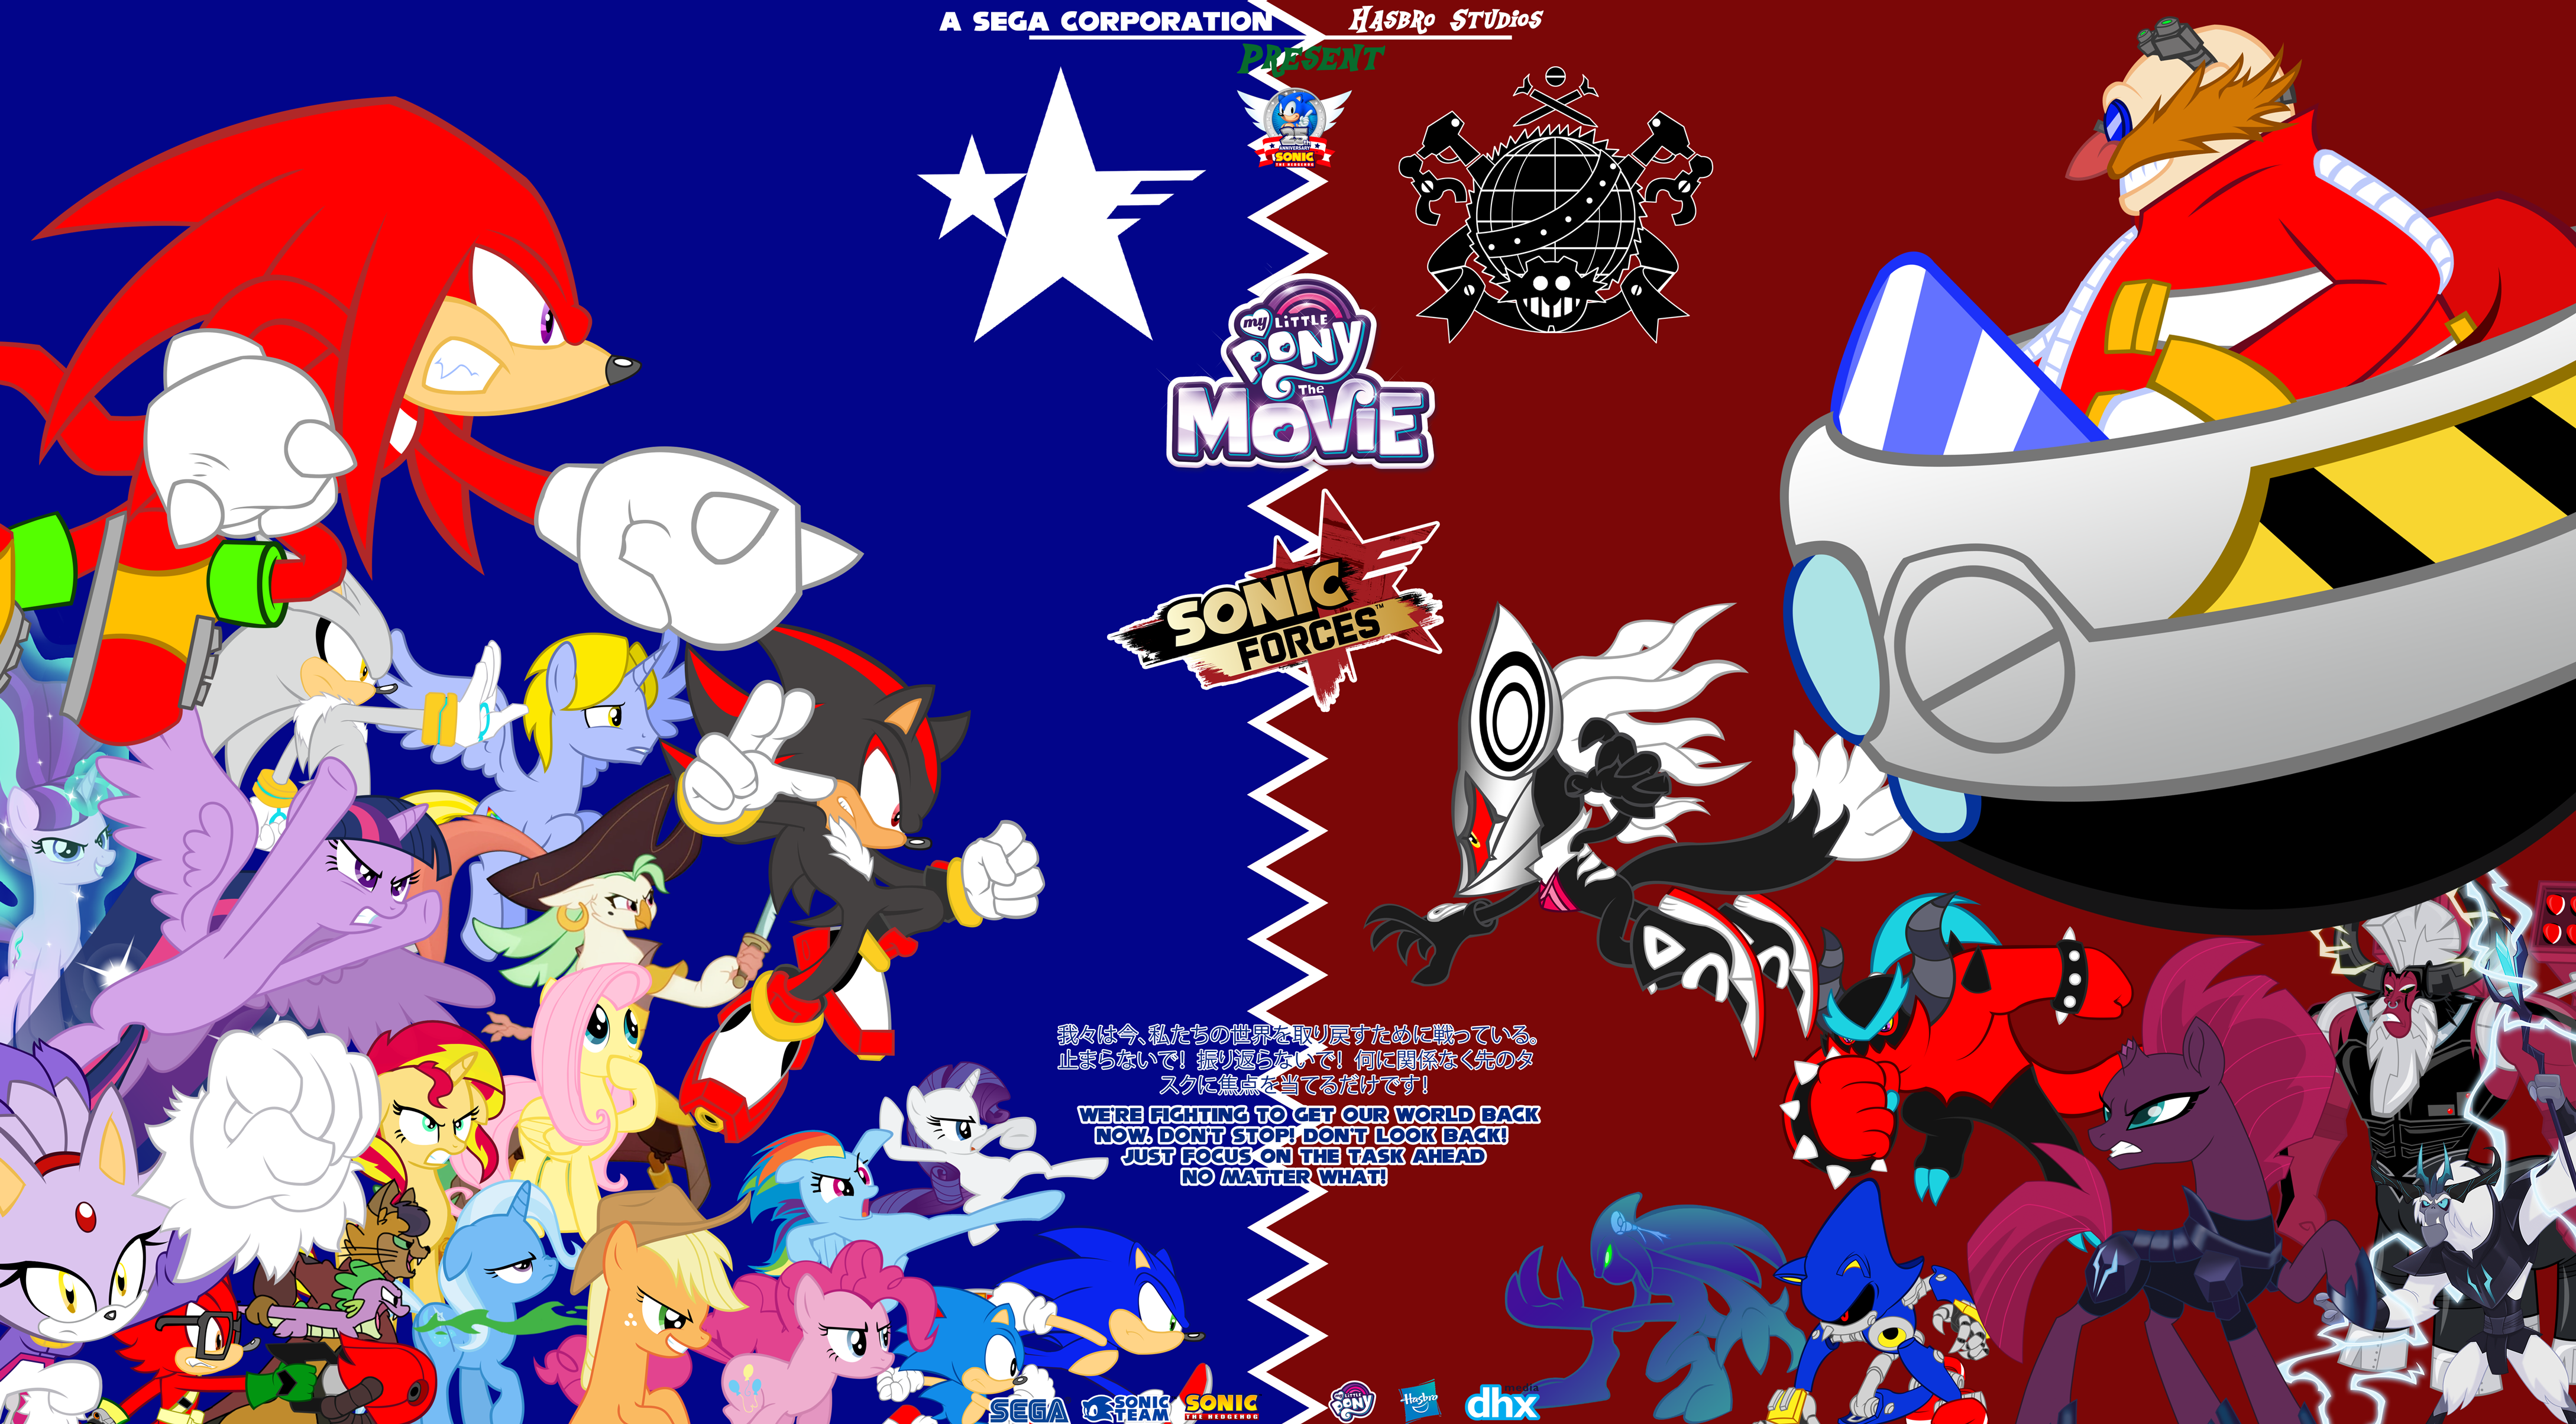 Sonic Forces X Mlp Movie Empire Strike Back By Trungtranhaitrung